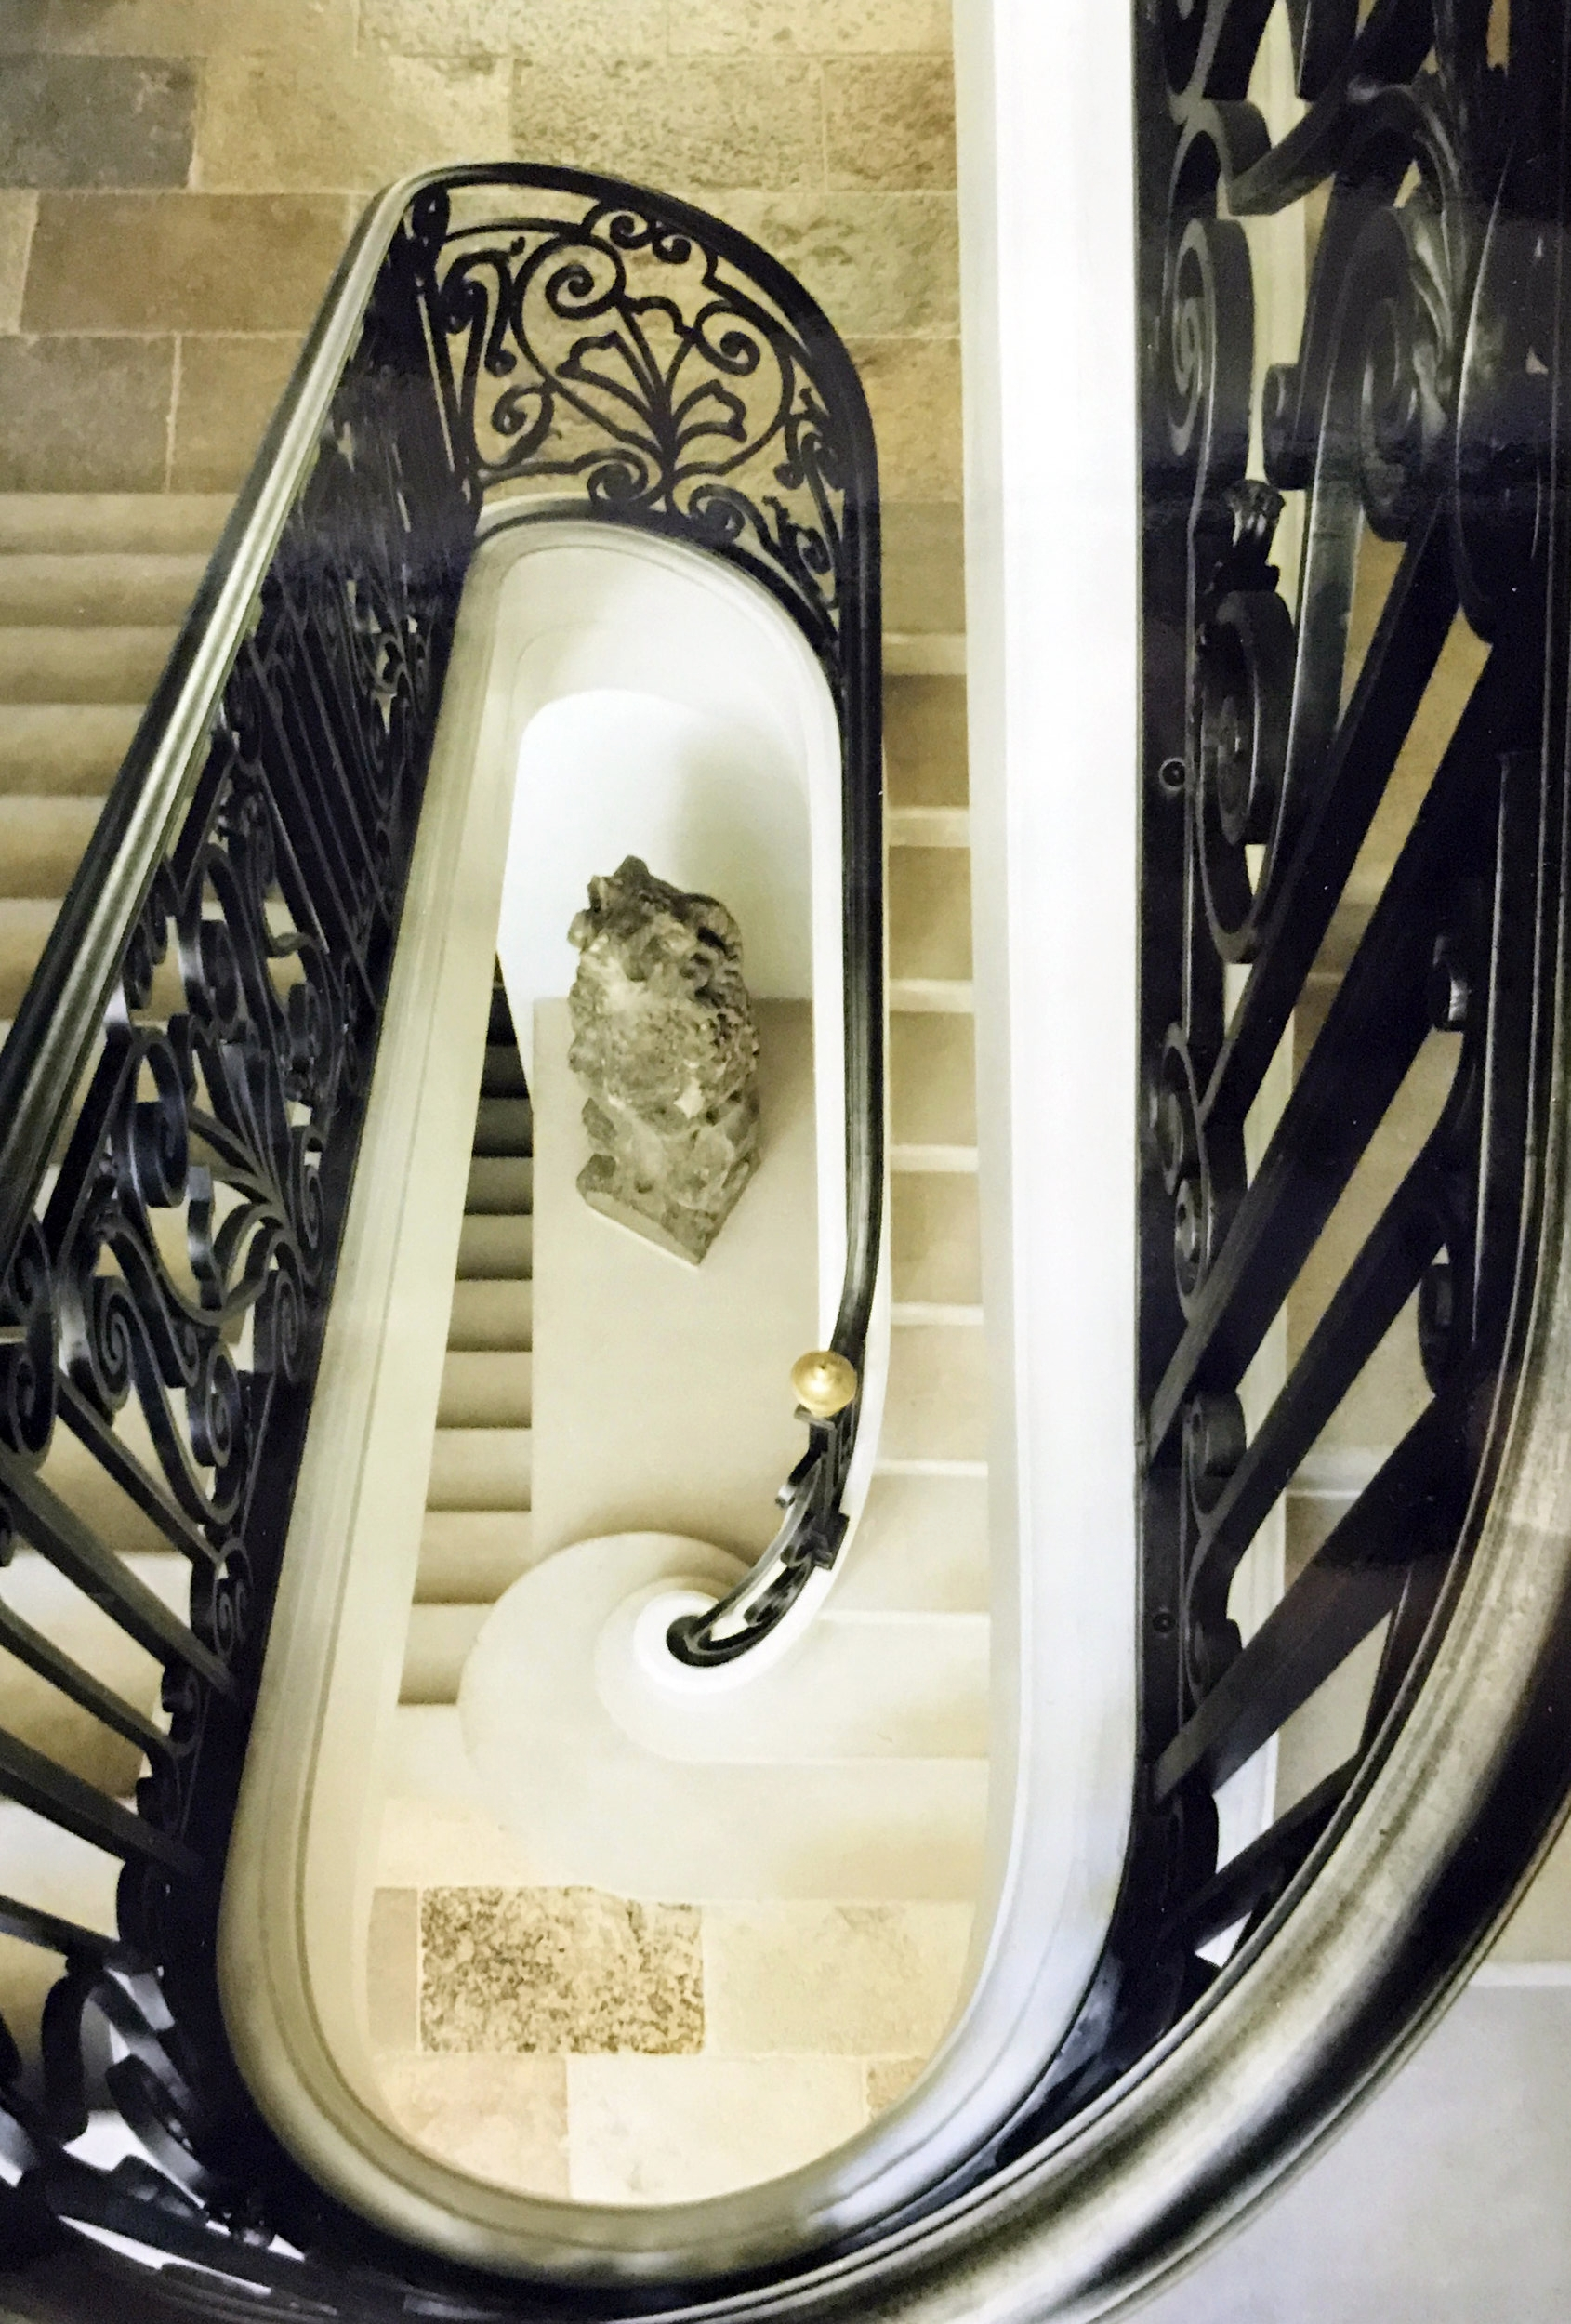 Spiral staircase in Parisian style home.